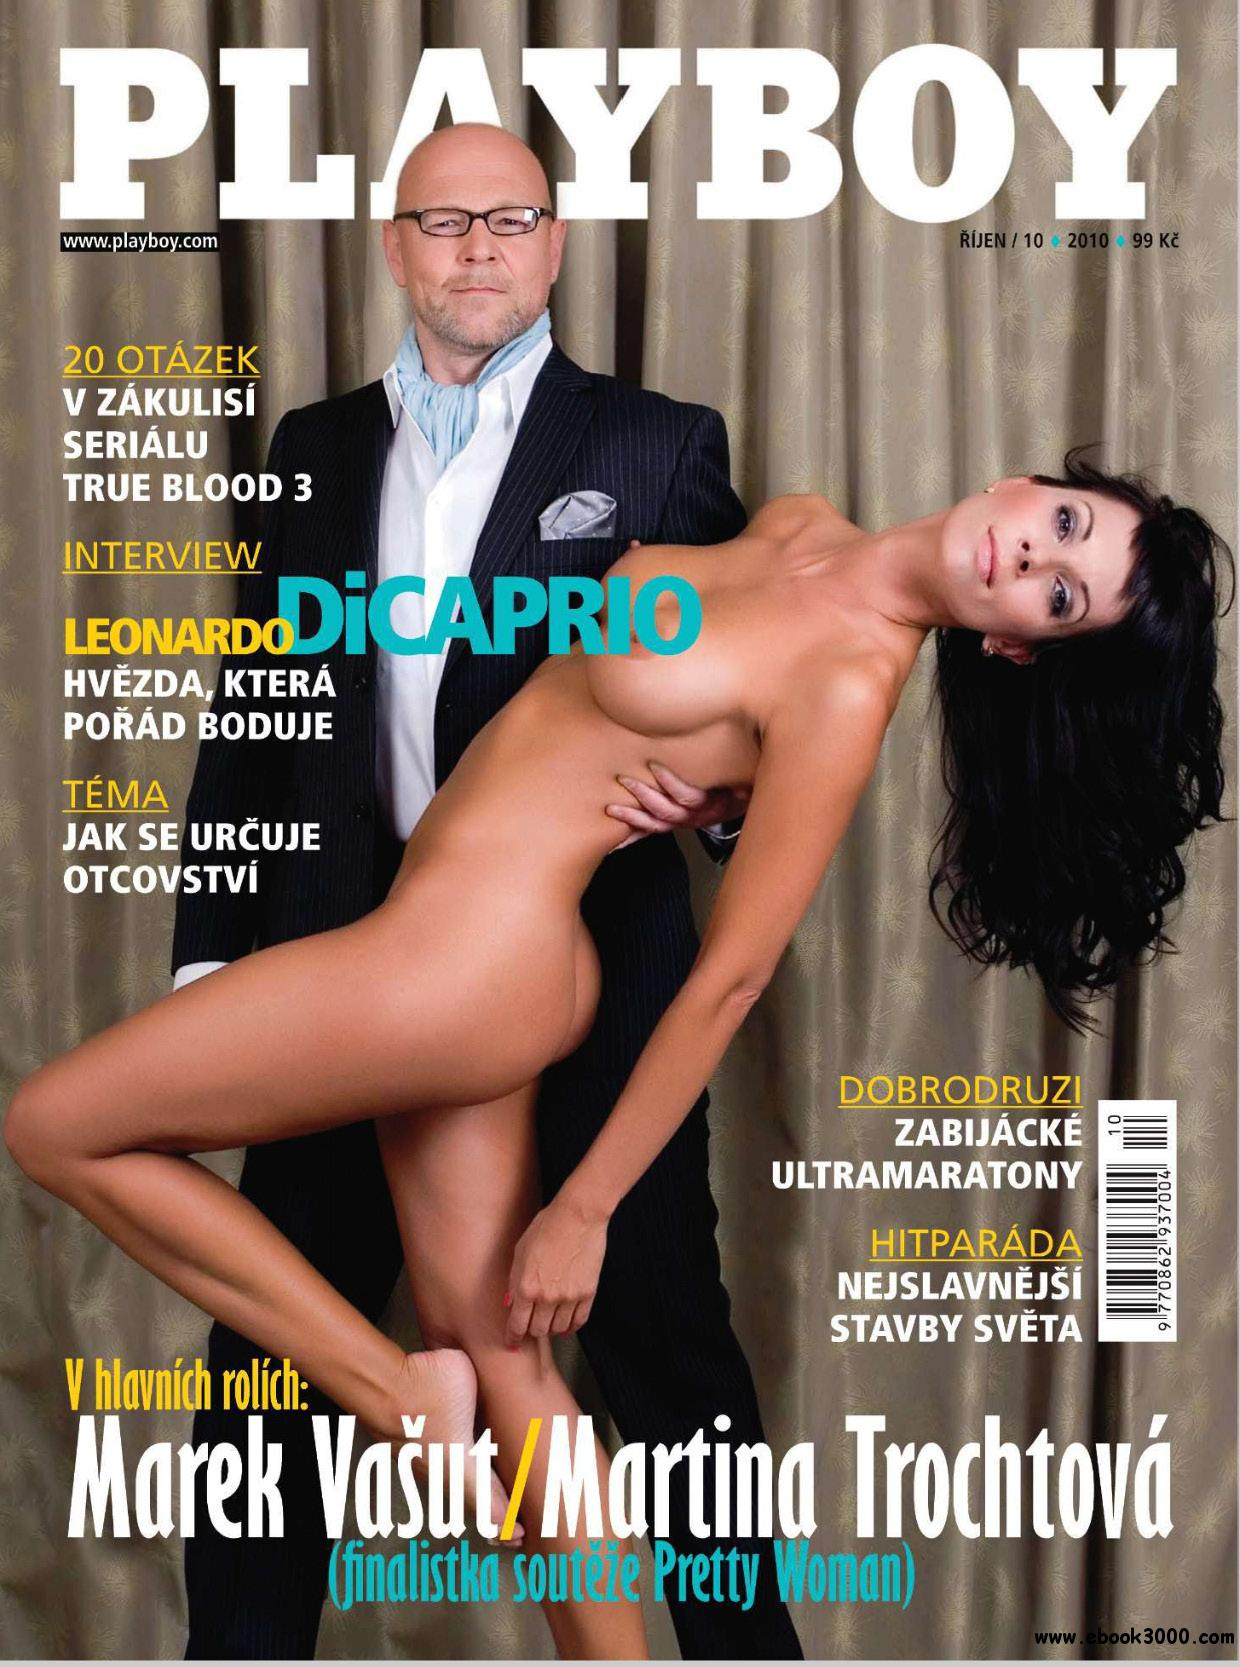 Playboy Czech - October 2010 free download